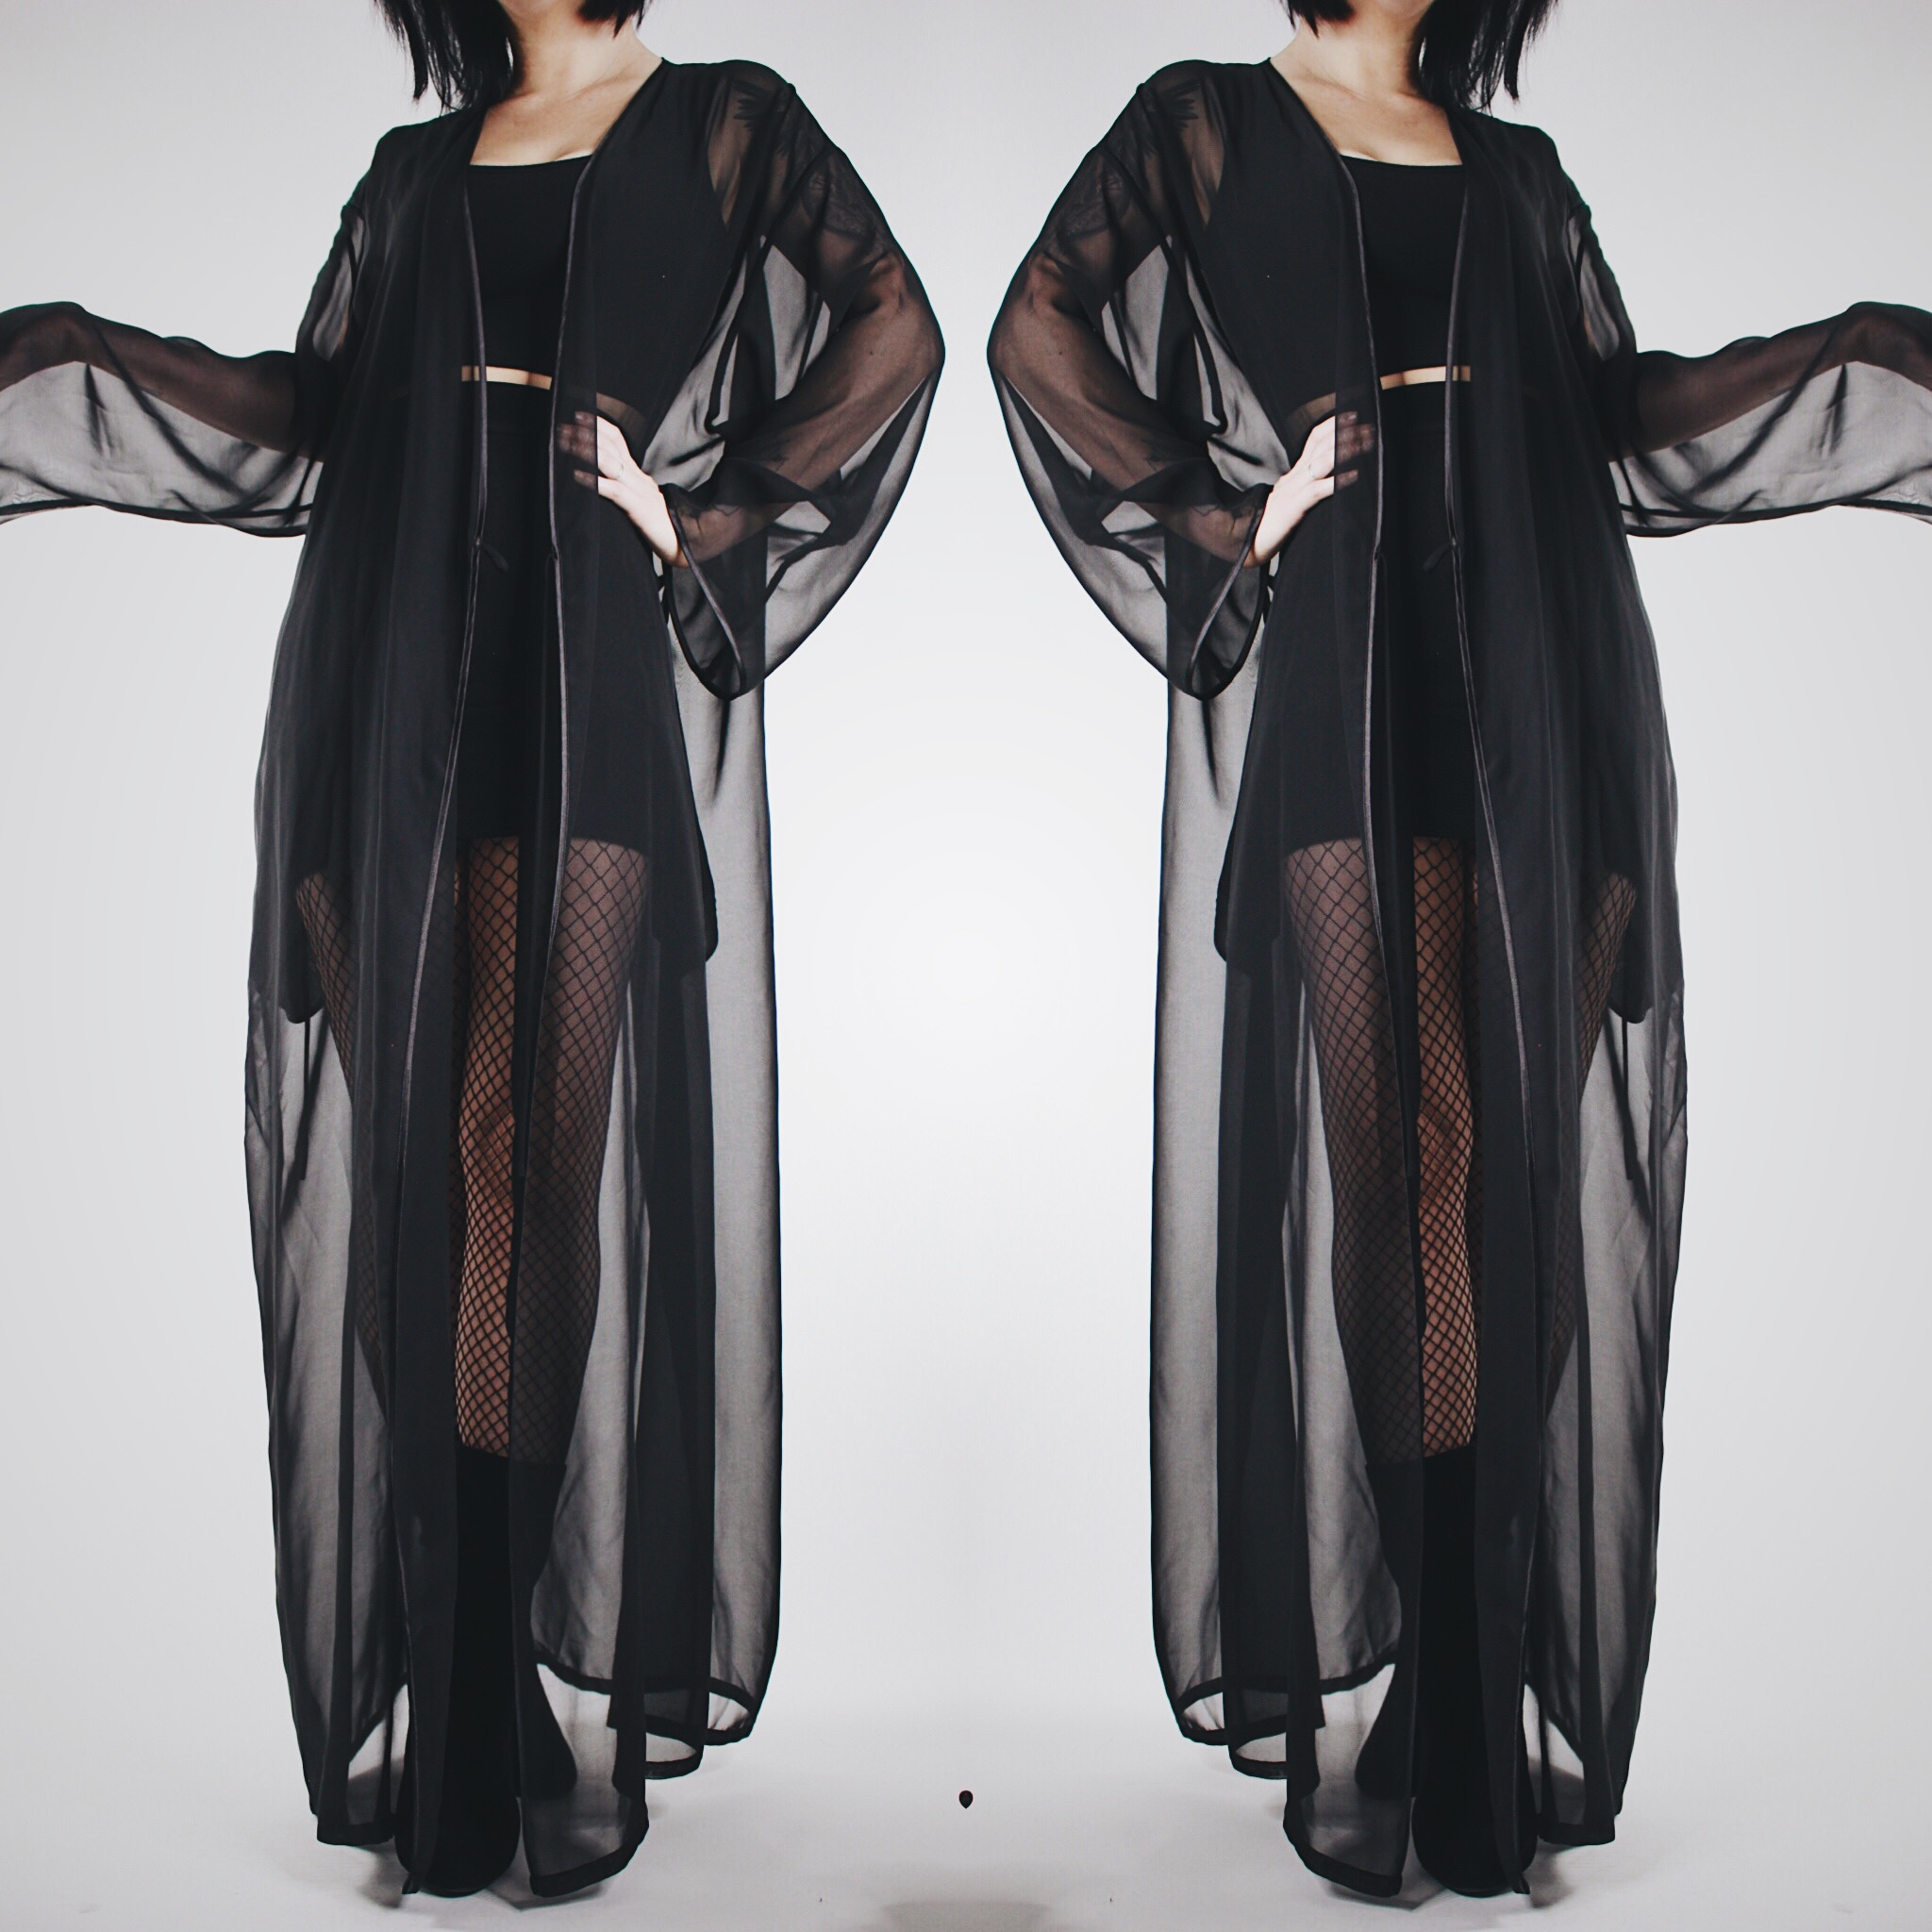 09e7c43e7016 CLAIMED @skully_mean - Vintage 80s Black Sheer Flowy Multi-Way Dressing Gown  - Thumbnail ...